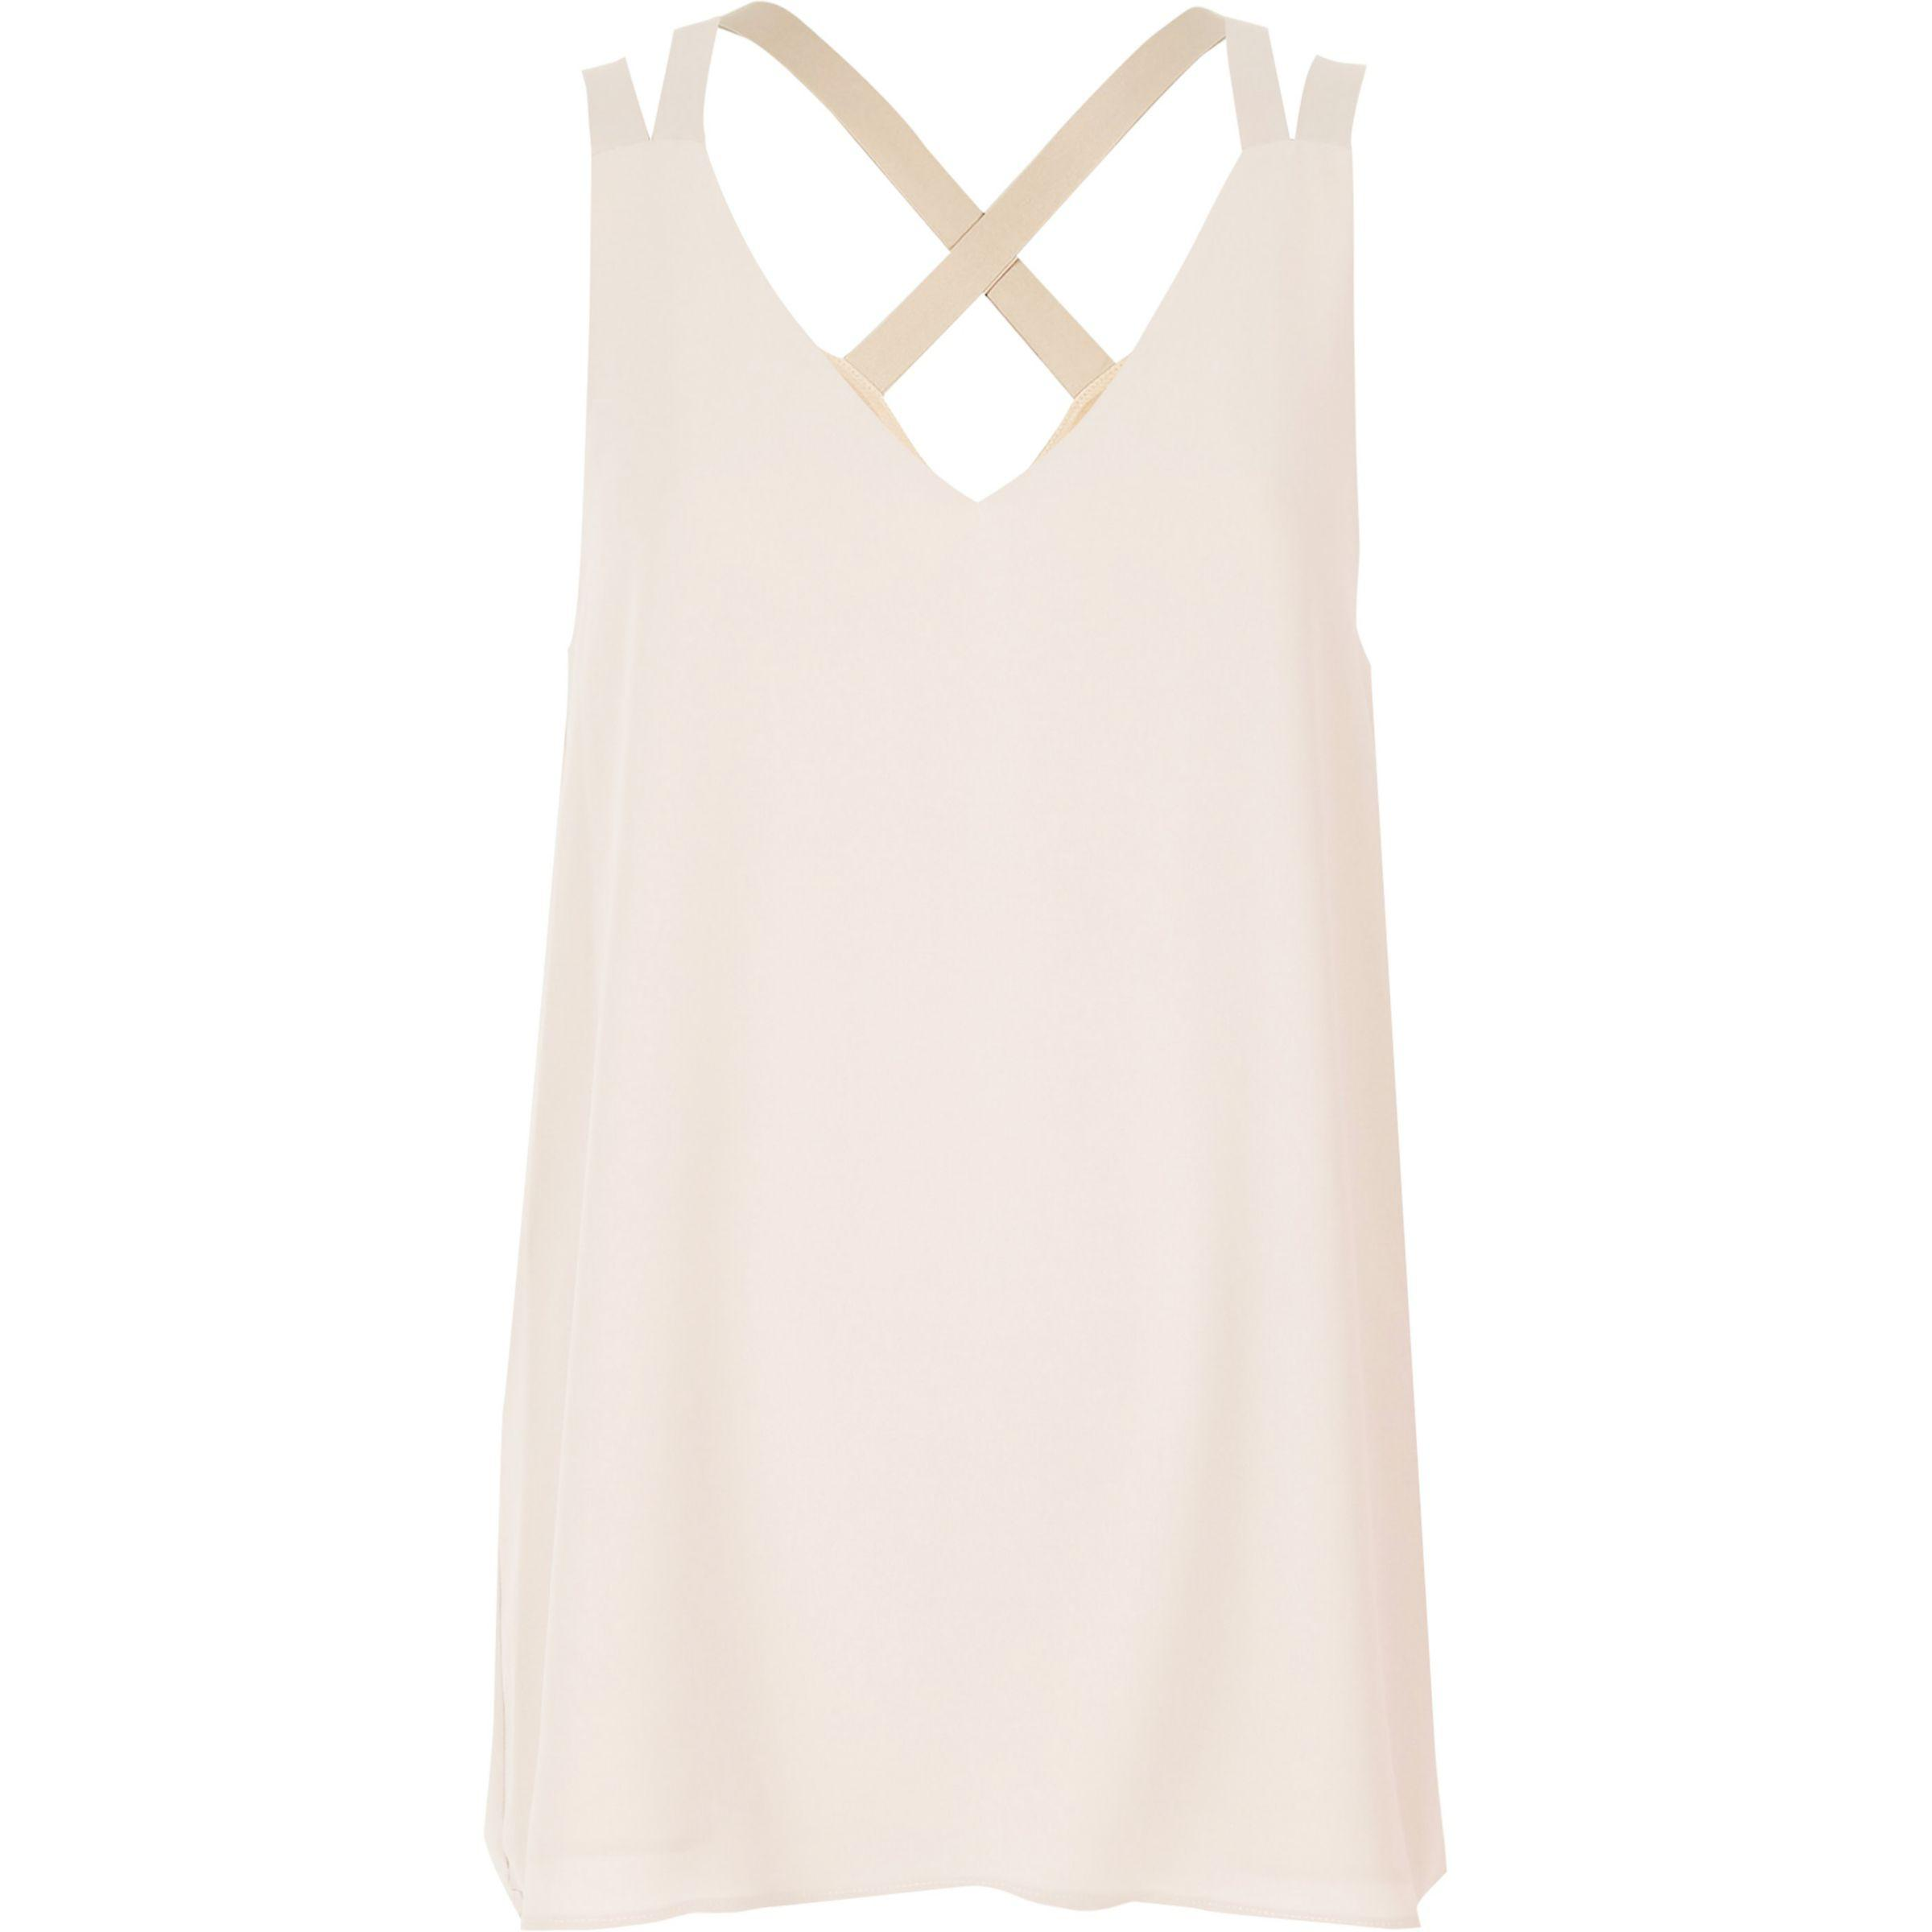 57a768afb37 Women's Natural Light Beige Cross Back Double Strap Cami Top